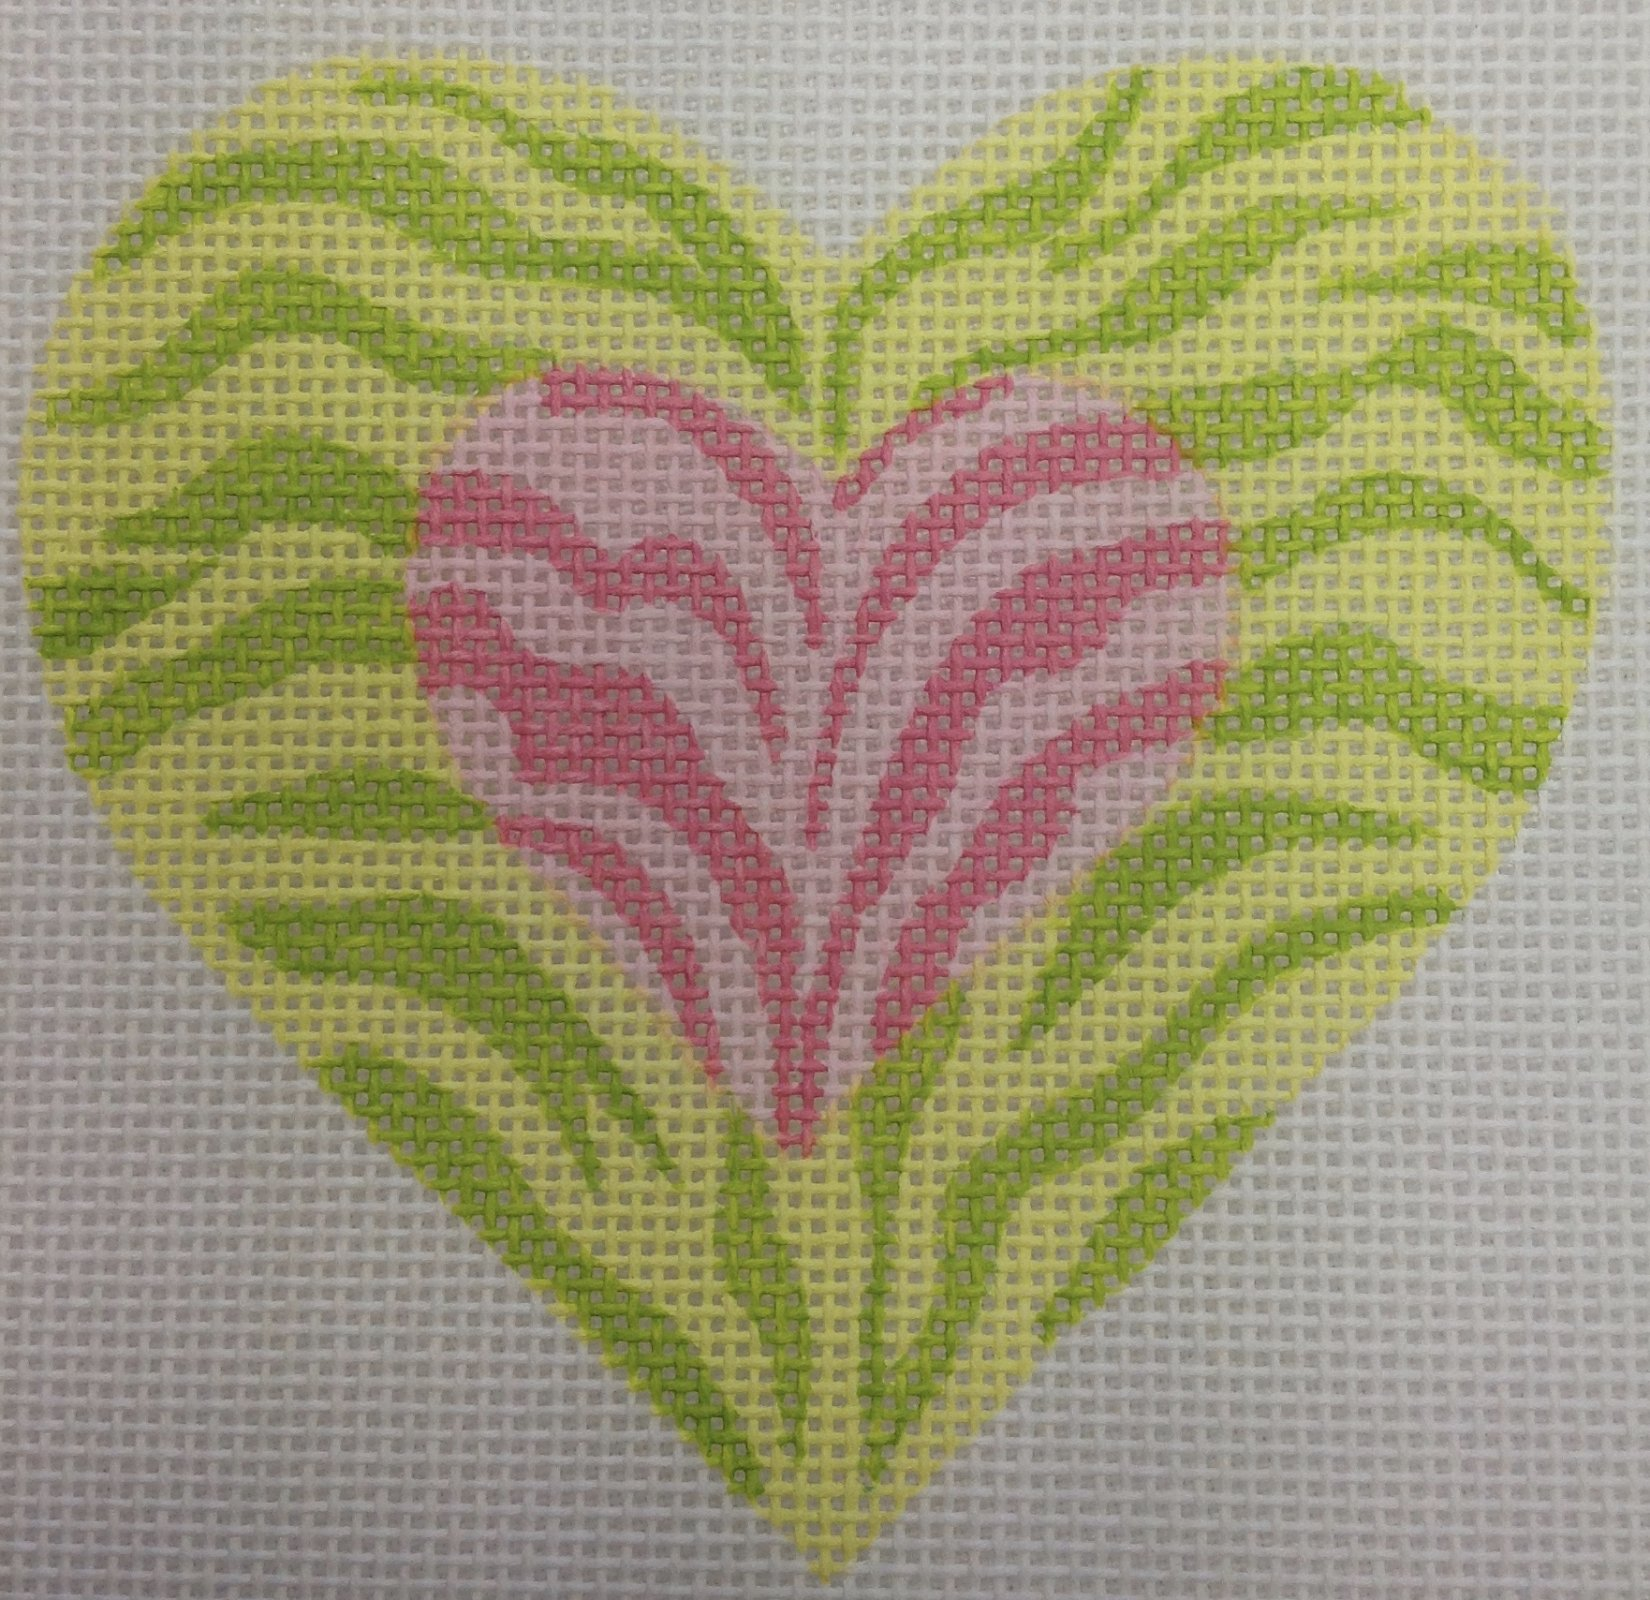 pink, yellow & green heart